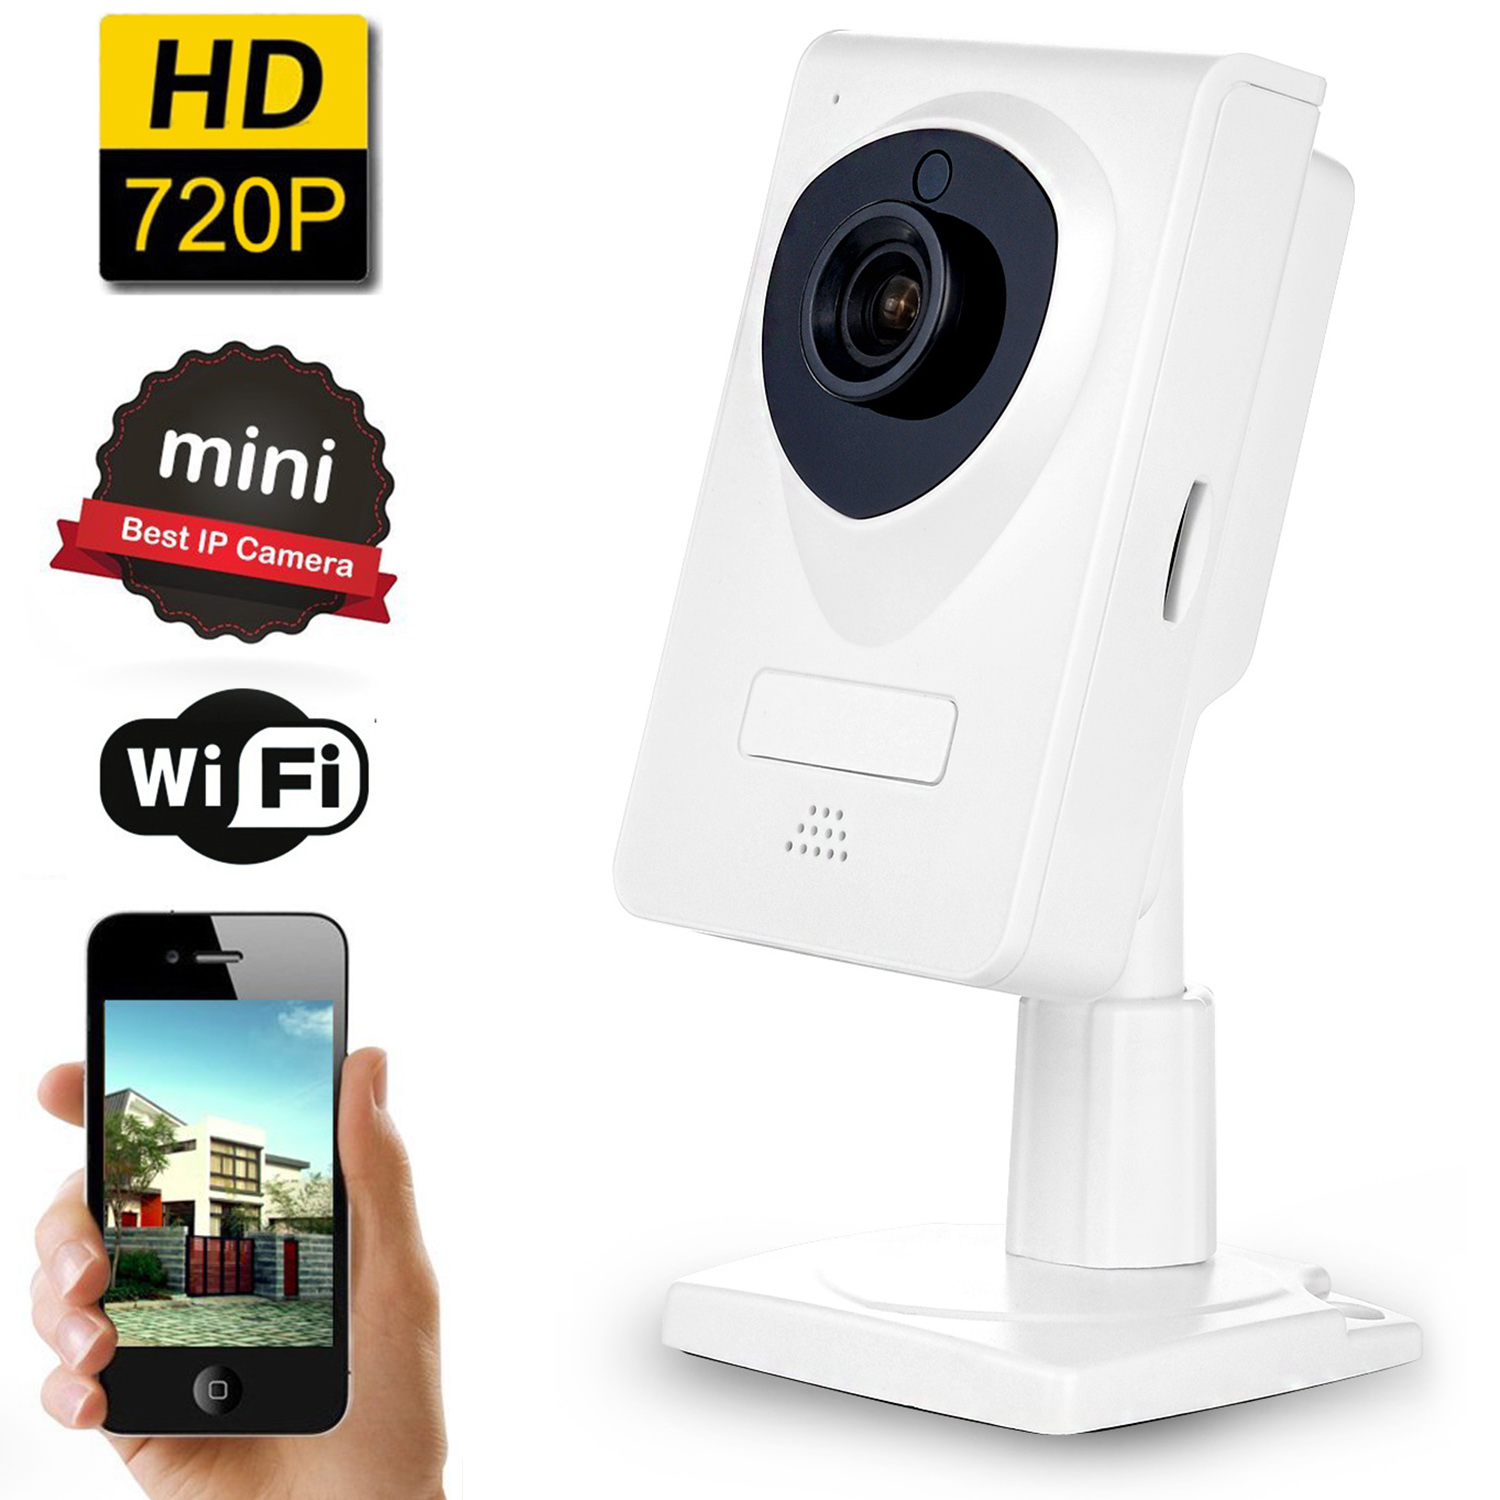 AGPtek Wireless Security Camera Monitor Camera Network Surveillance Camera 720P WiFi IP Camera with Night Vision